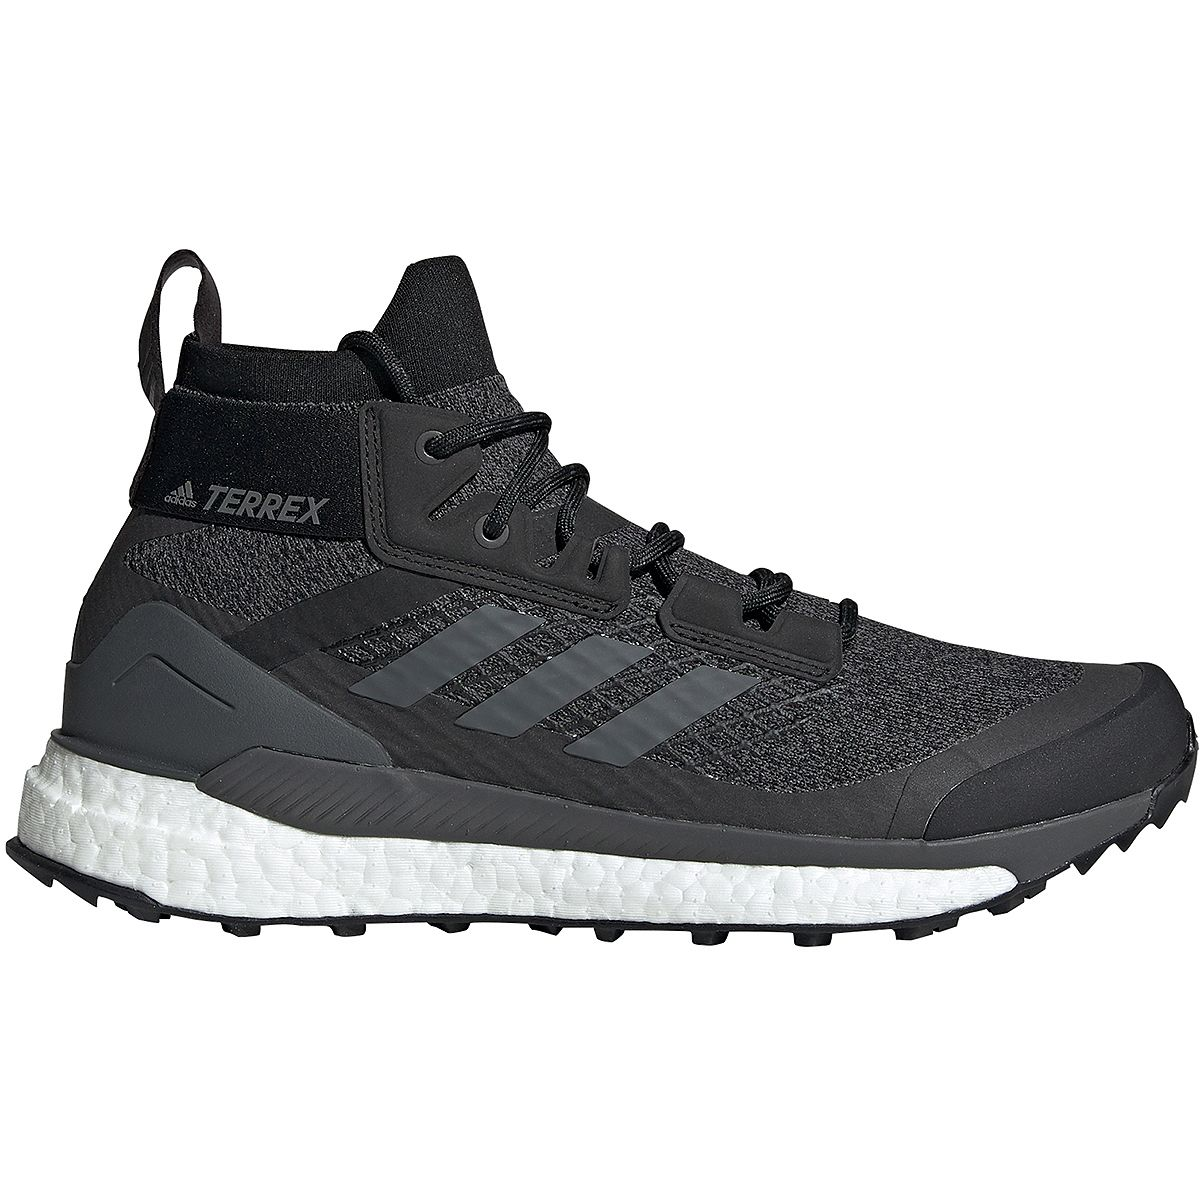 photo: Adidas Terrex Free Hiker hiking boot